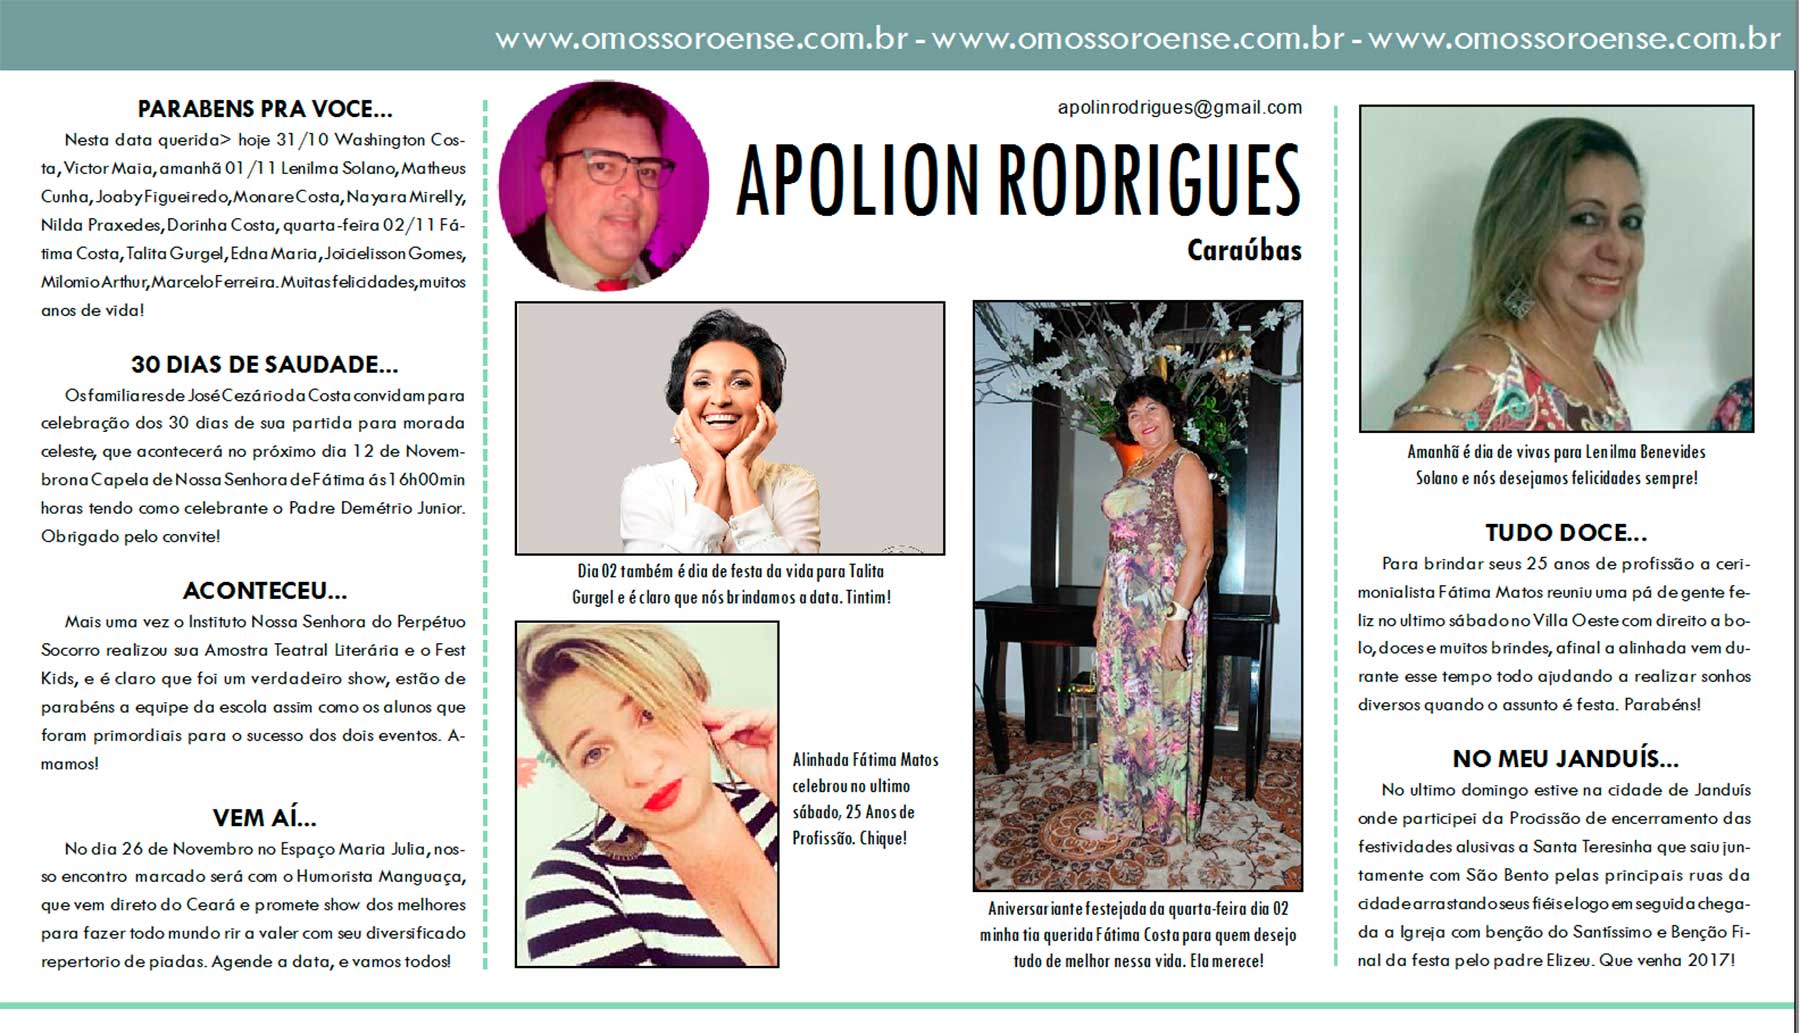 apolion-rodrigues-31-10-2016